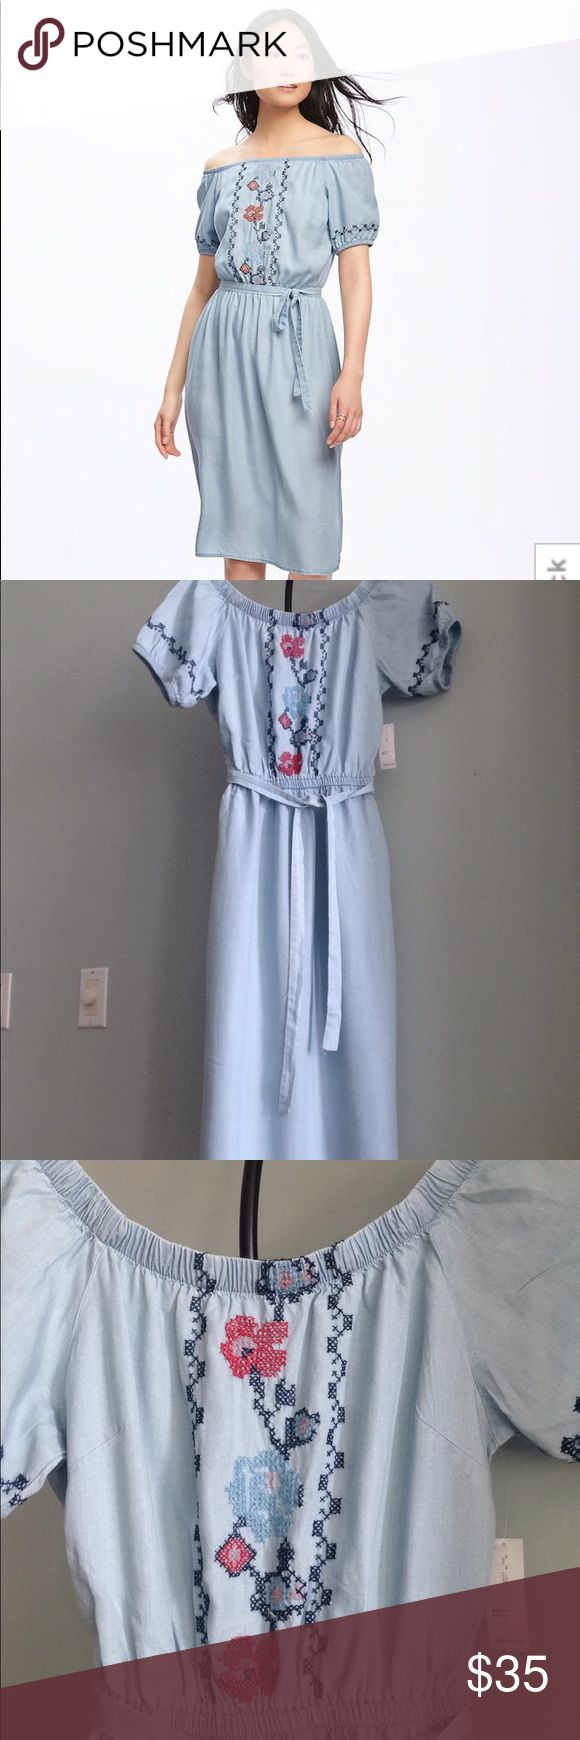 """NWT OLD NAVY Embroidered Off-Shoulder Midi Dress Details - Off-the-shoulder neck if desired or not - Cross-Stitch Embroidery on Bust Area and Sleeves (Embroidery is a loose weave with a look of imperfection) - Elastic Around Sleeves and Waist; Fabric Belt - Side Vents - Size XSP (Generously Sized, but not huge) - Approx. 38.5"""" length ,11"""" @ Unstretched Elastic Waist, 18"""" Flat Pit to Pit - Made in USA of imported fabric  Fiber Content: 100% Cotton Old Navy Dresses Midi"""